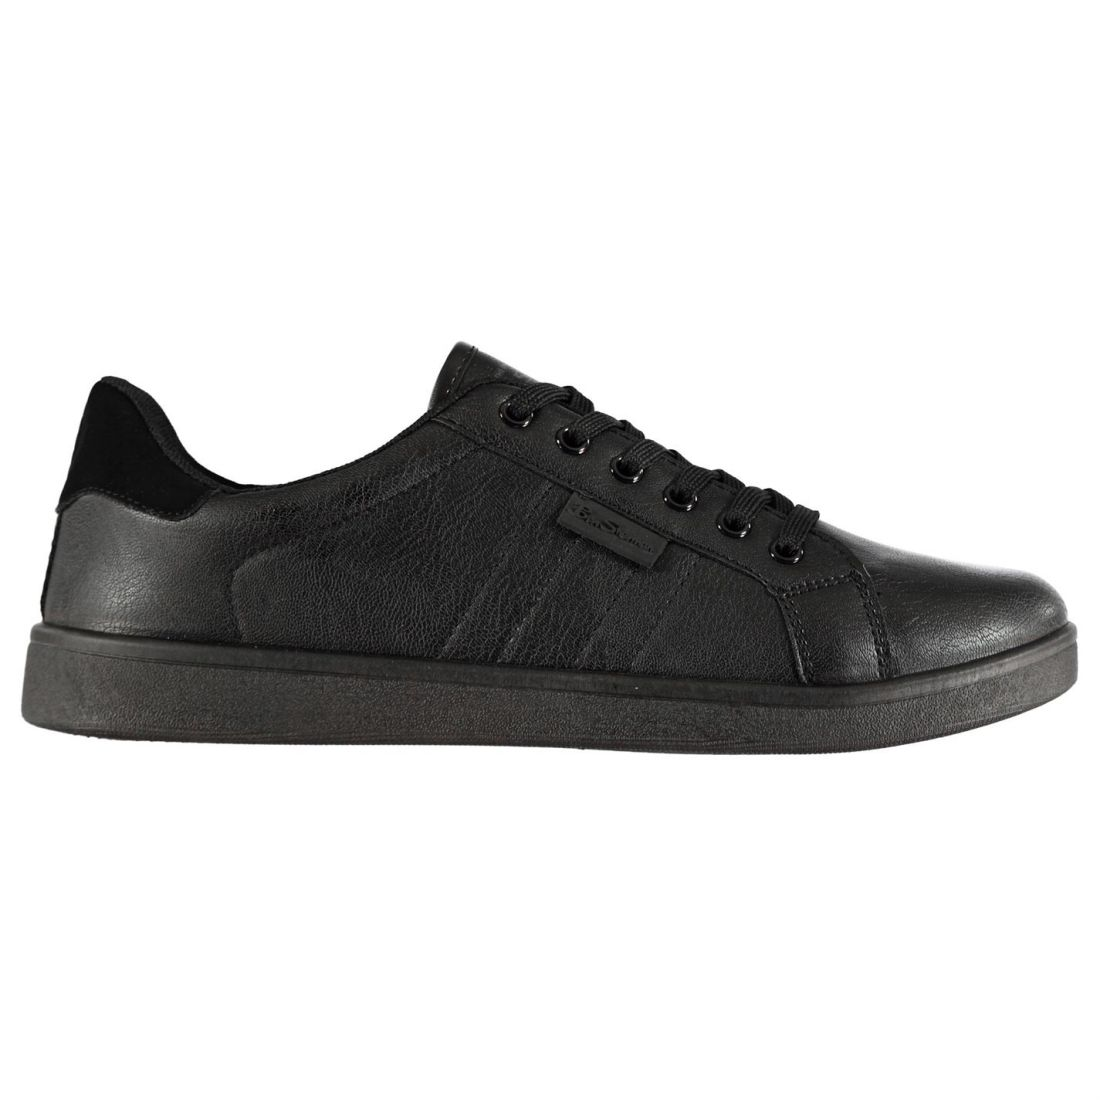 Ben Sherman Malice Sneakers Mens Gents Low Laces Fastened Padded Ankle Collar